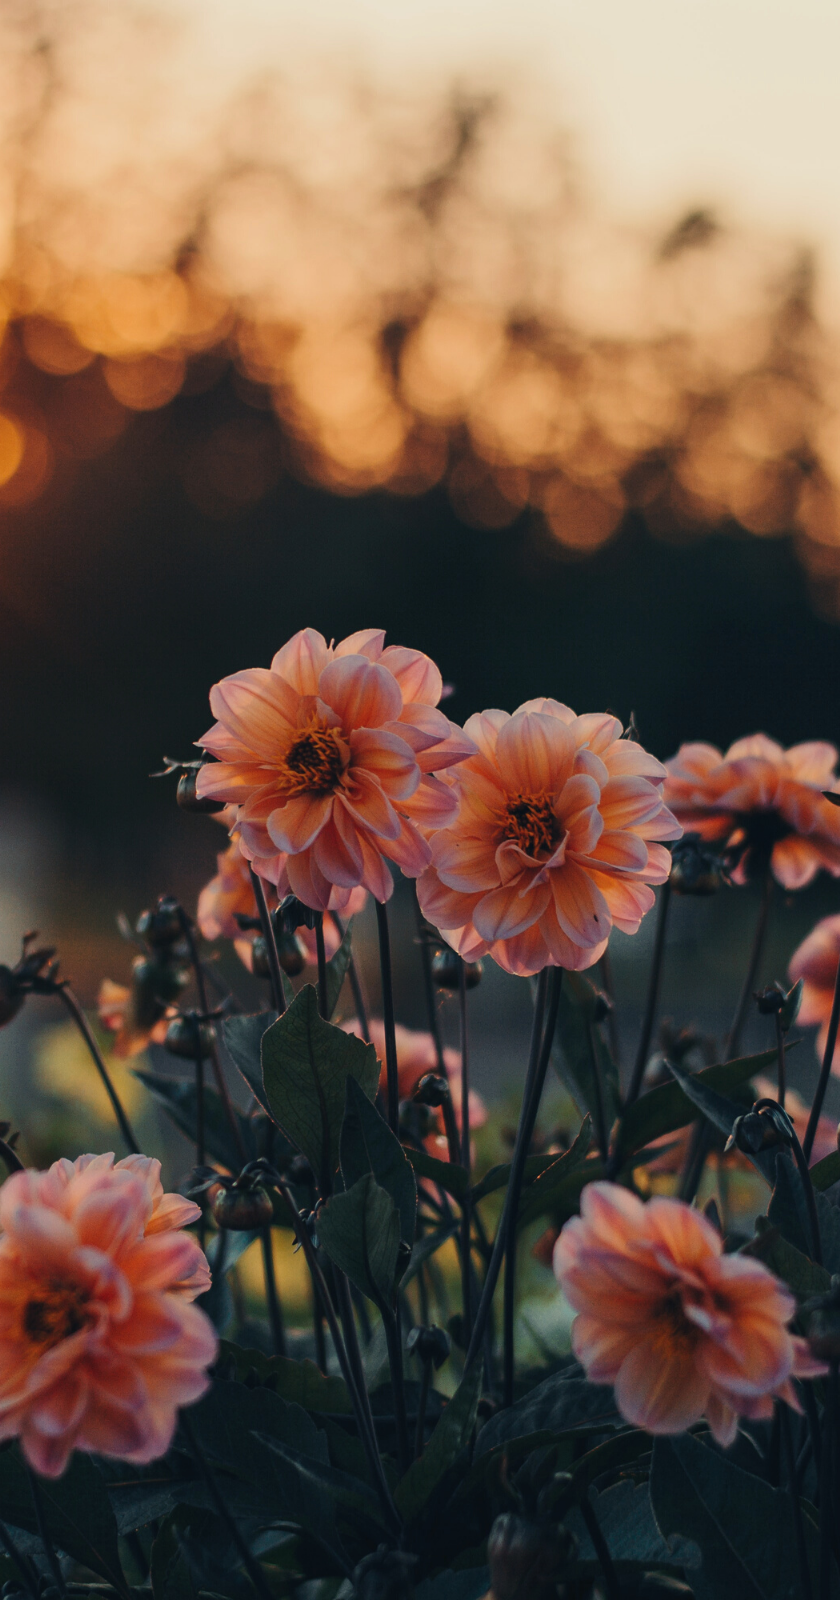 Wallpapers For Iphone 25 Best Floral Wallpapers From Tumblr In 2020 Flower Iphone Wallpaper Iphone Wallpaper Photography Wallpaper Nature Flowers